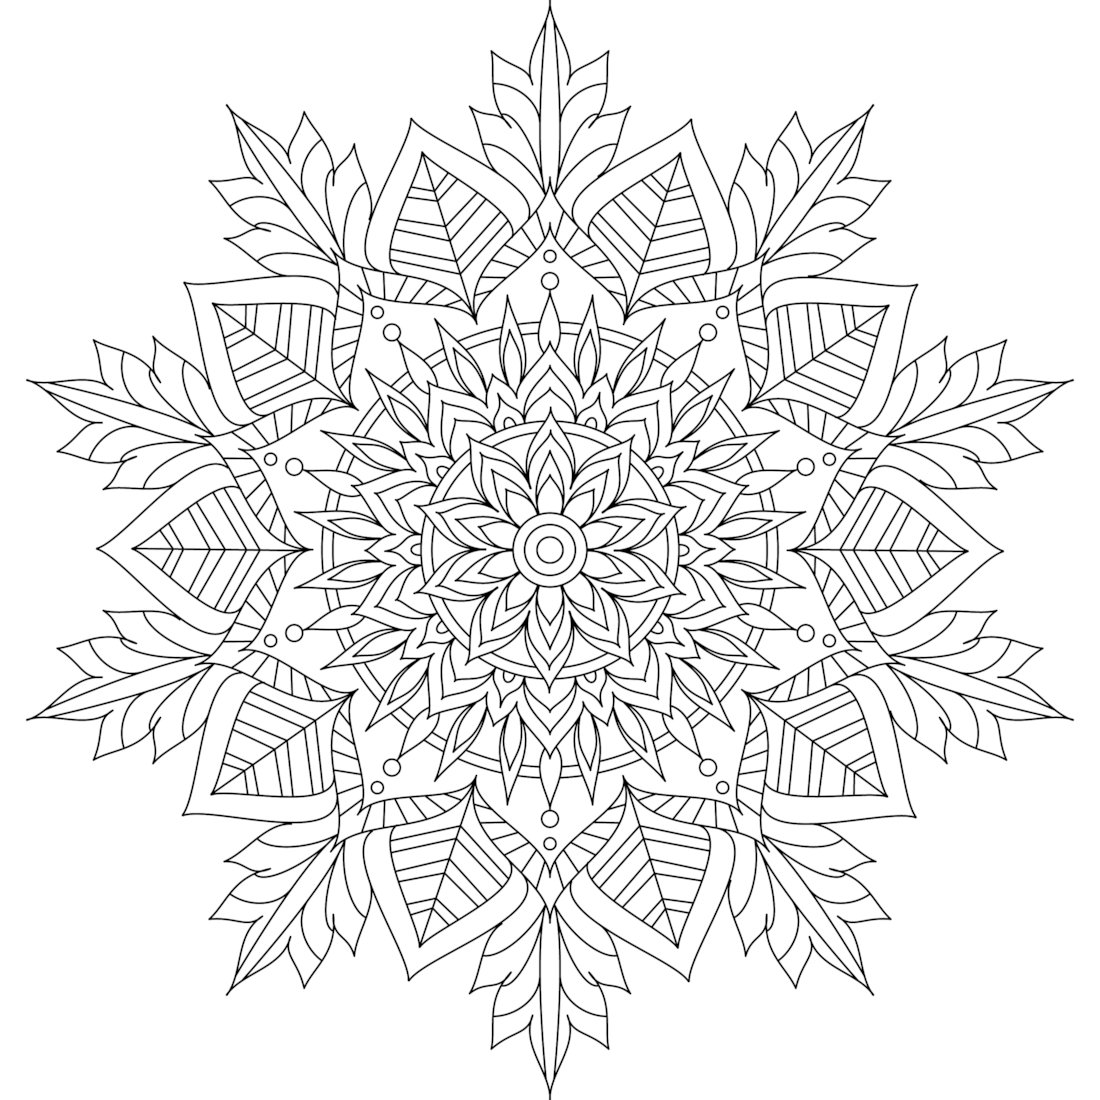 This Is Winter Soul One Of Over 100 Printable Mandalas